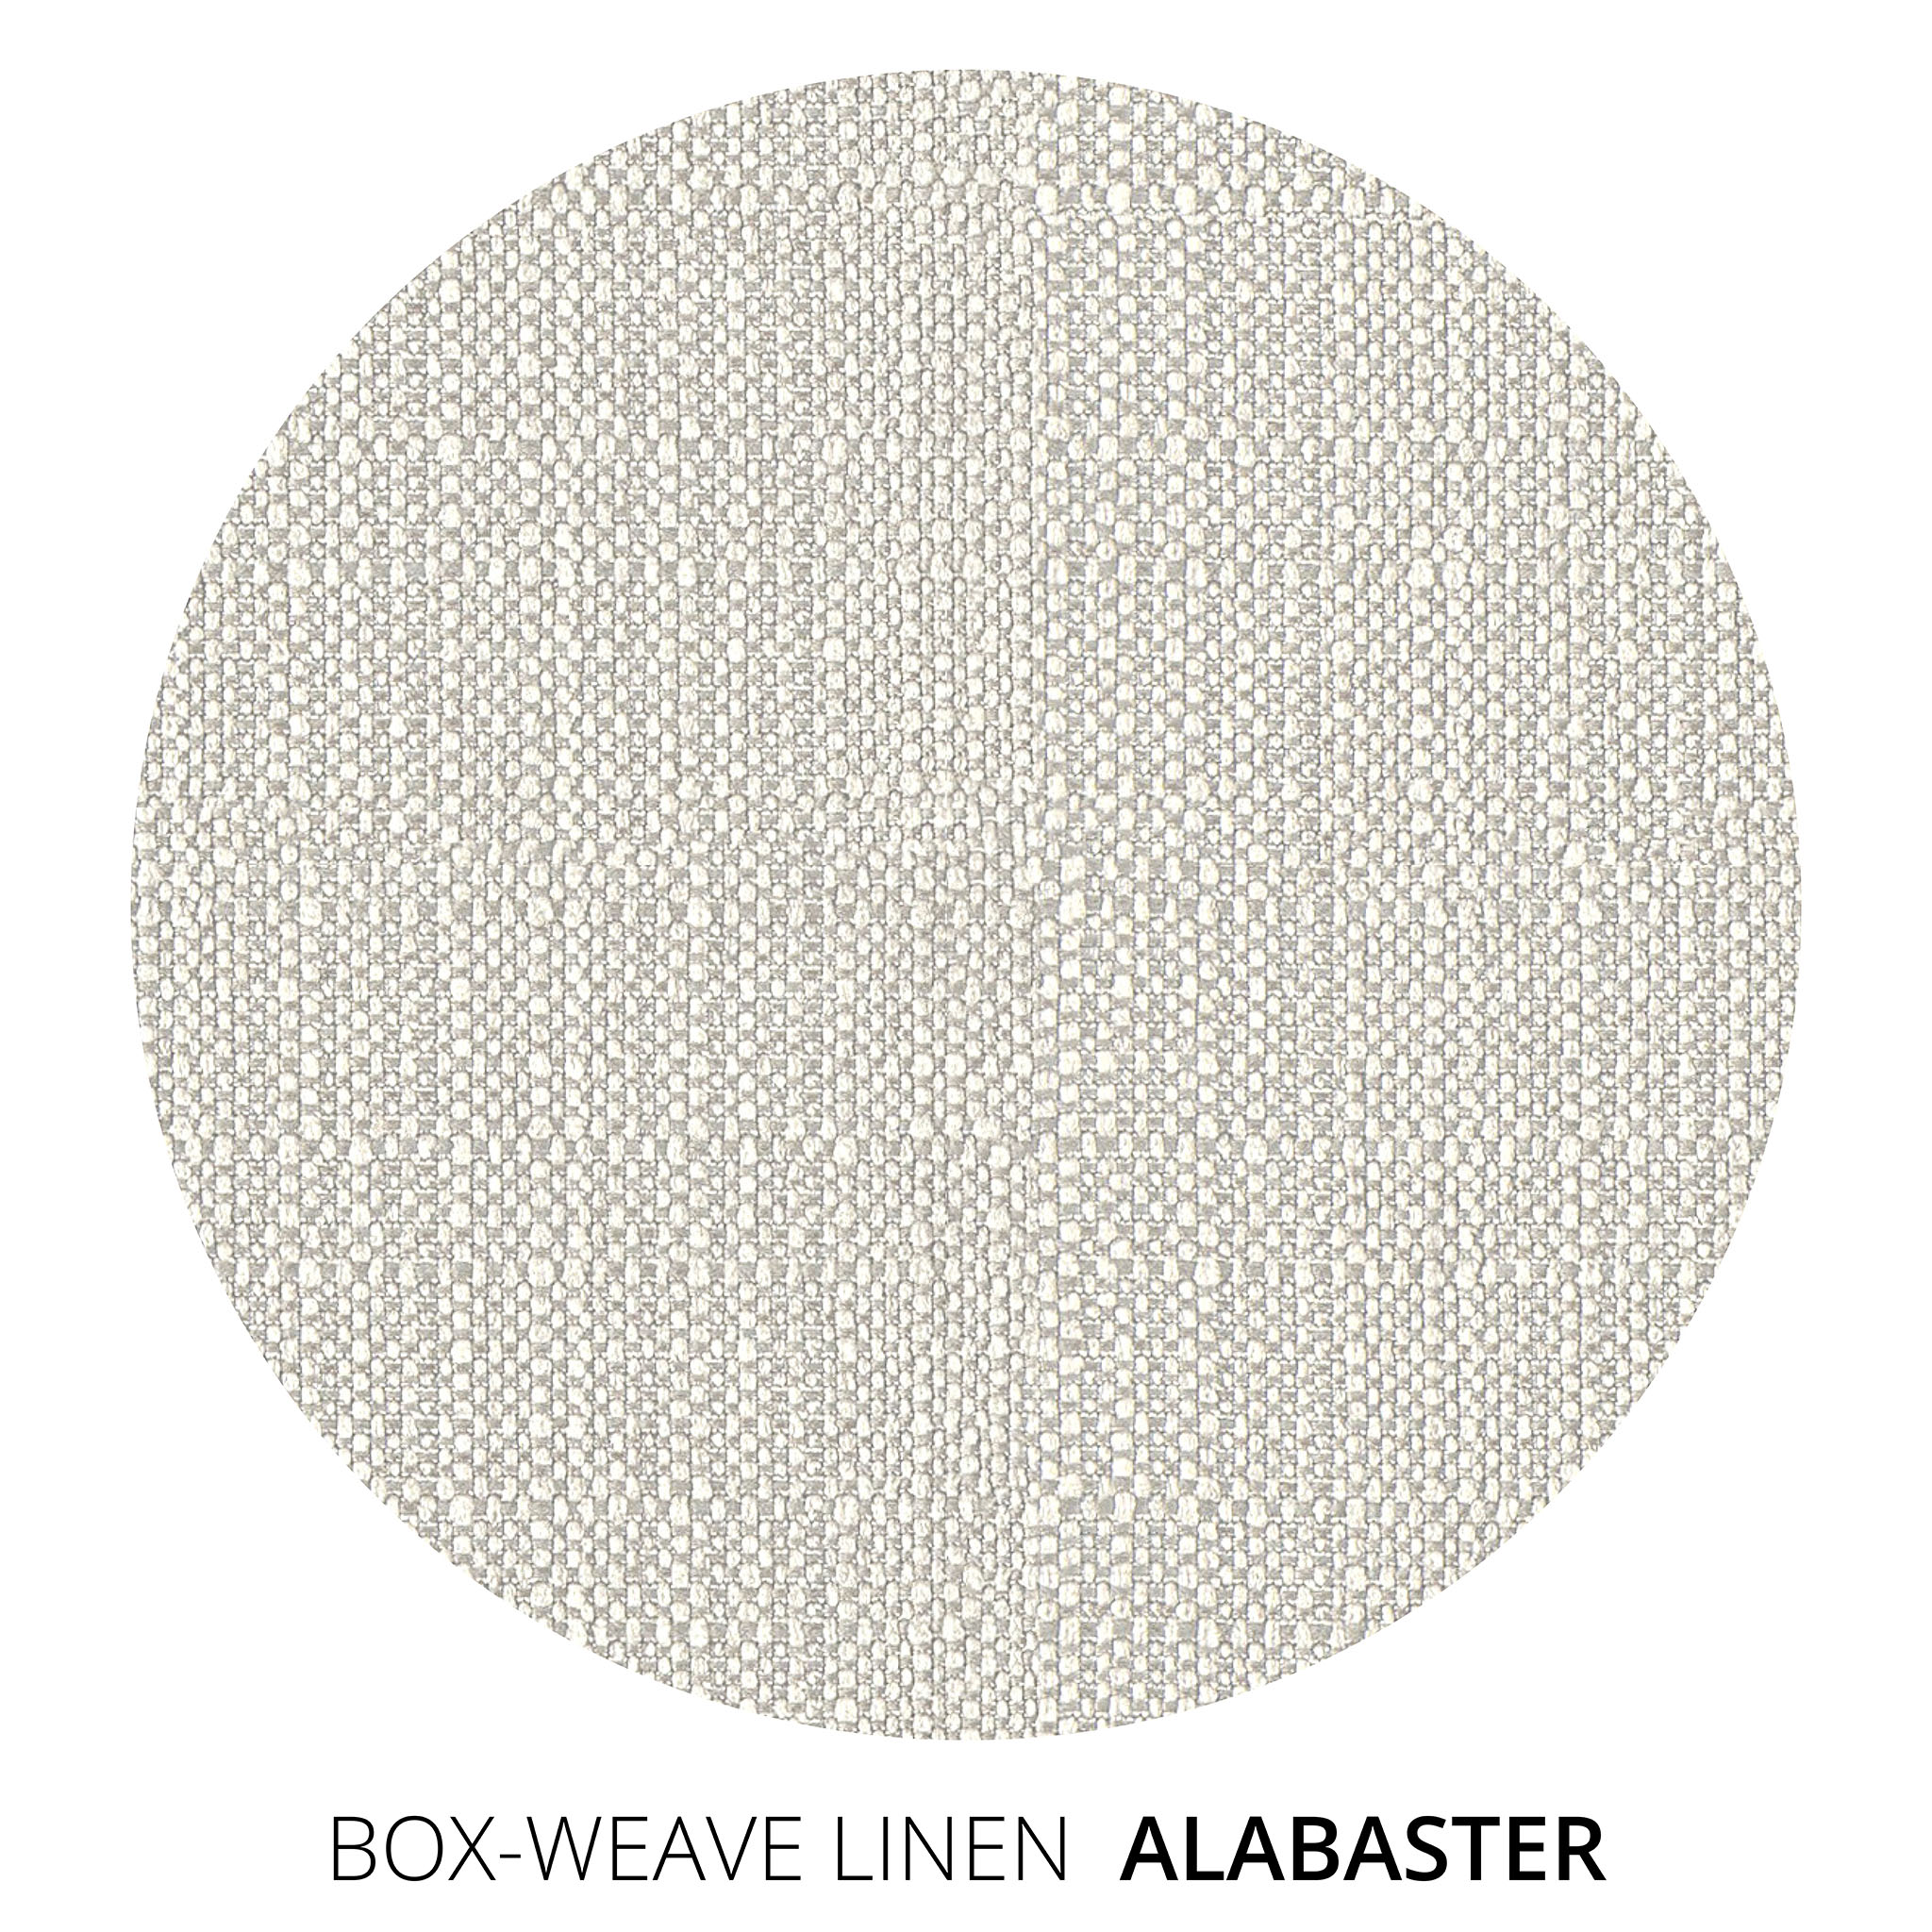 Alabaster Box Weave Linen Swatch